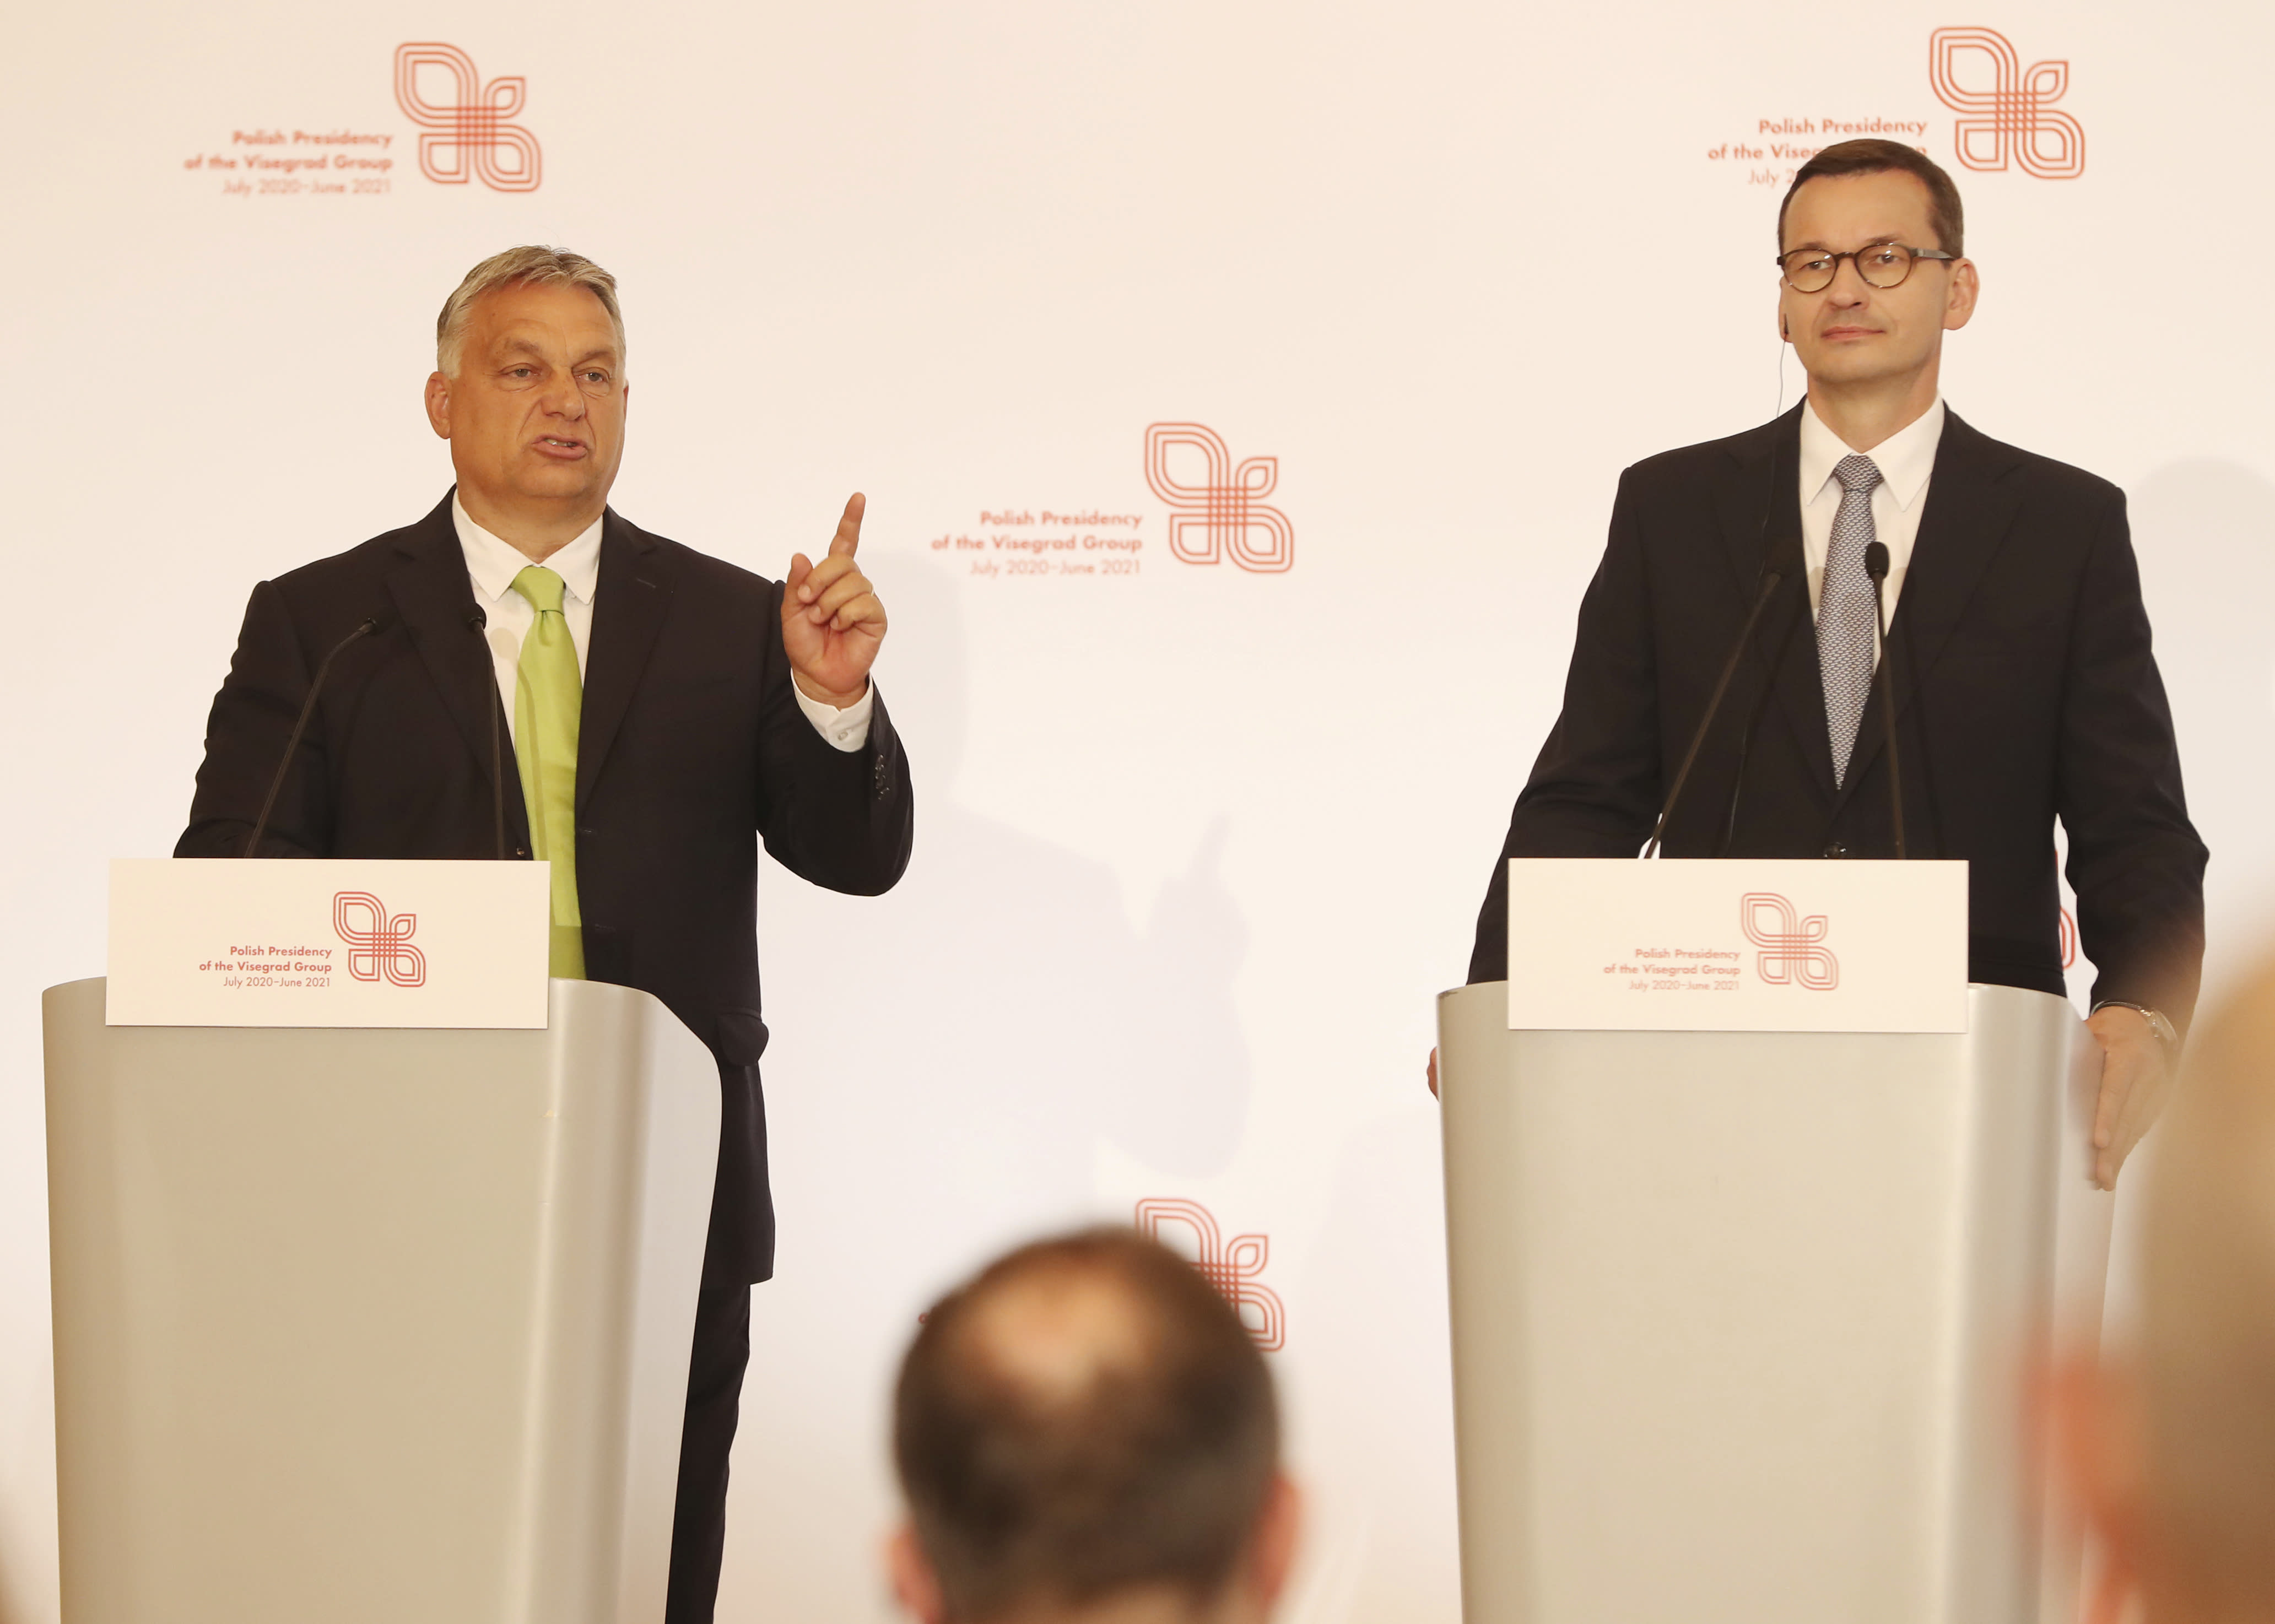 Hungarian Prime Minister Viktor Orban,left, speaks at a join news conference with Poland's Prime Minister Mateusz Morawiecki,right, following talks of government leaders of the Visegrad Group of regional cooperation that also includes the Czech Republic and Slovakia, in Warsaw, Poland, on Friday, July 3, 2020. Poland, which took the group's 12-month rotating presidency, is seeking a generous EU budget to help the region recover from the coronavirus pandemic.(AP Photo/Czarek Sokolowski)